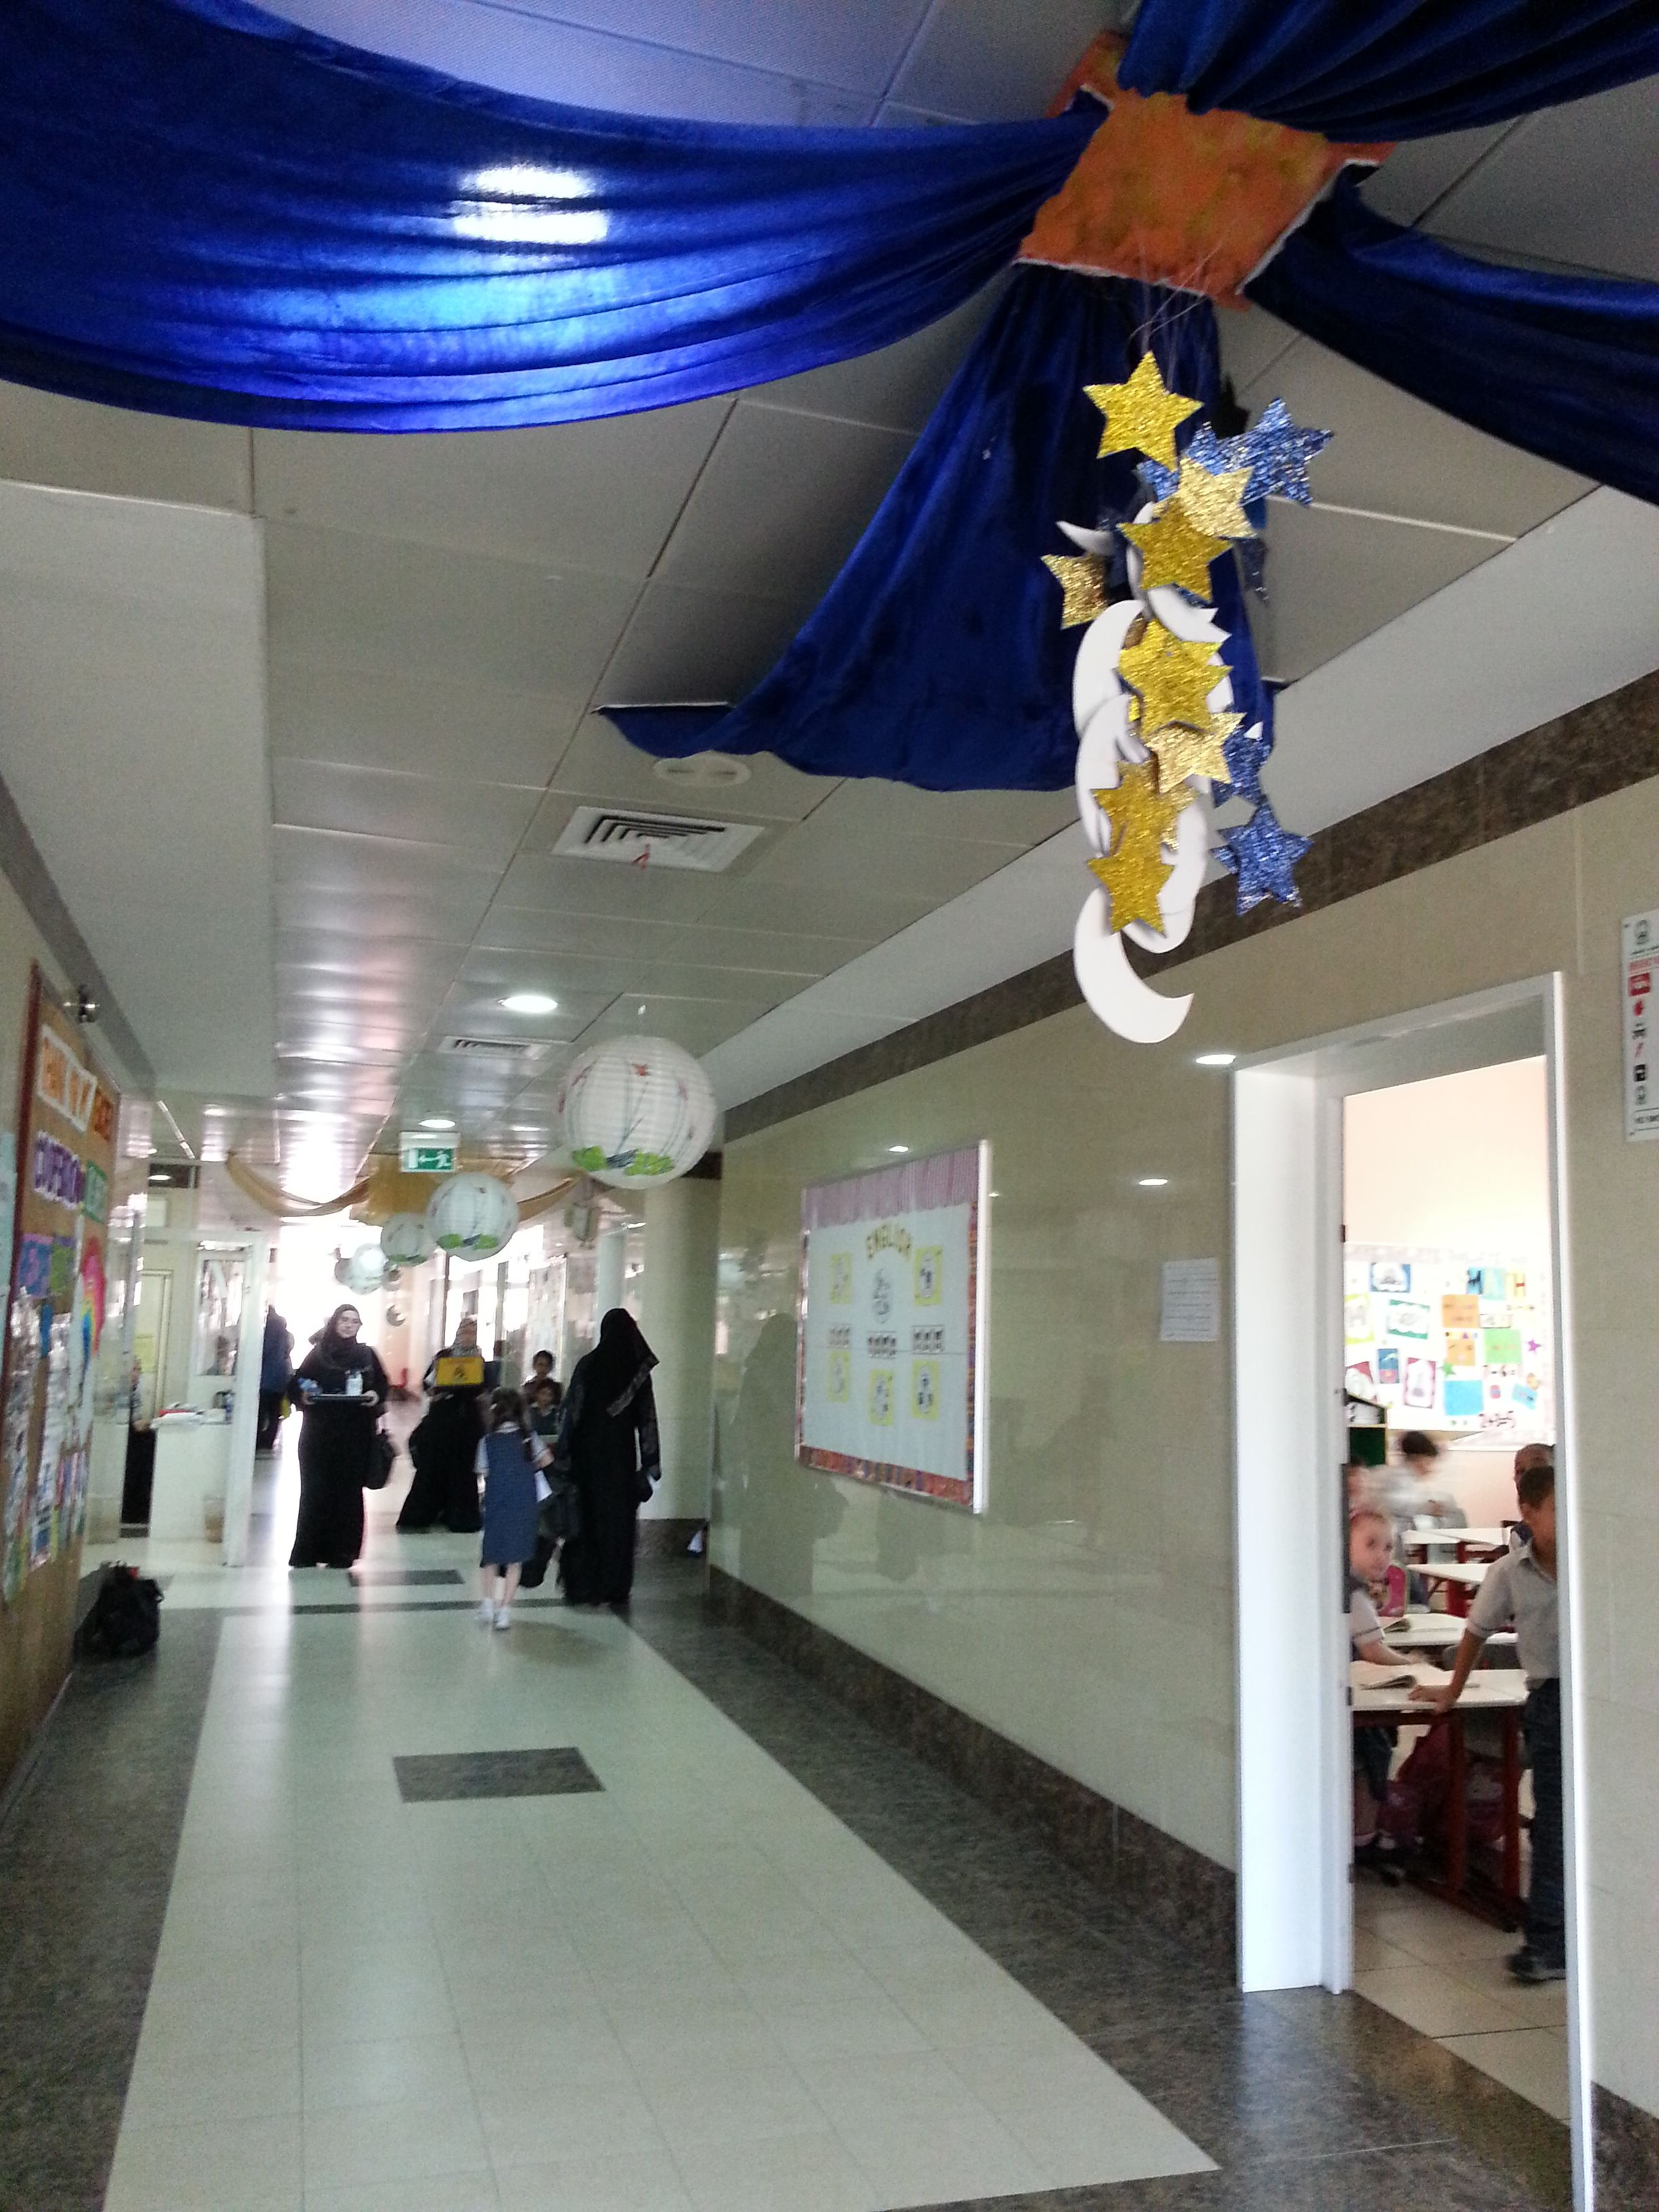 School hall decorations for Eid